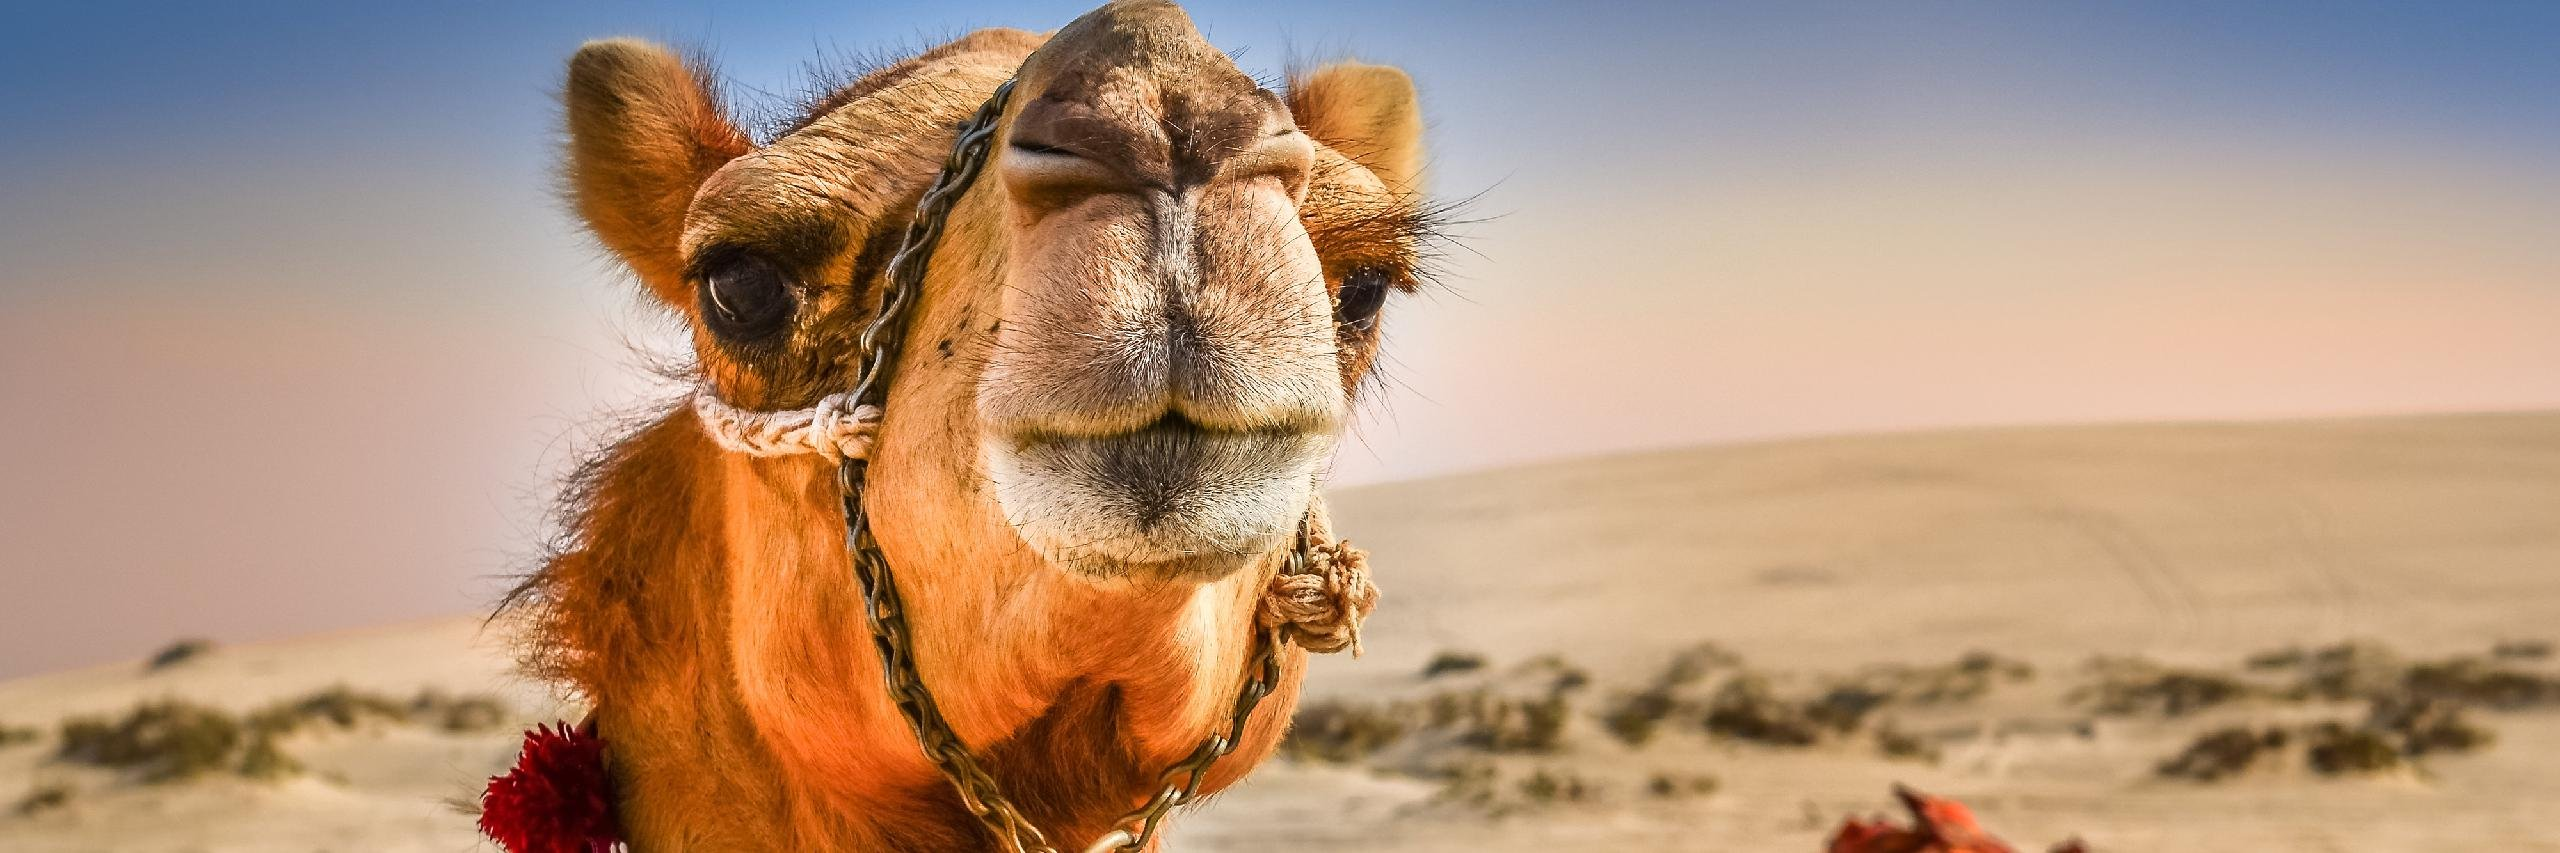 Tying Your Camel: An Islamic Perspective on Methodological Naturalism